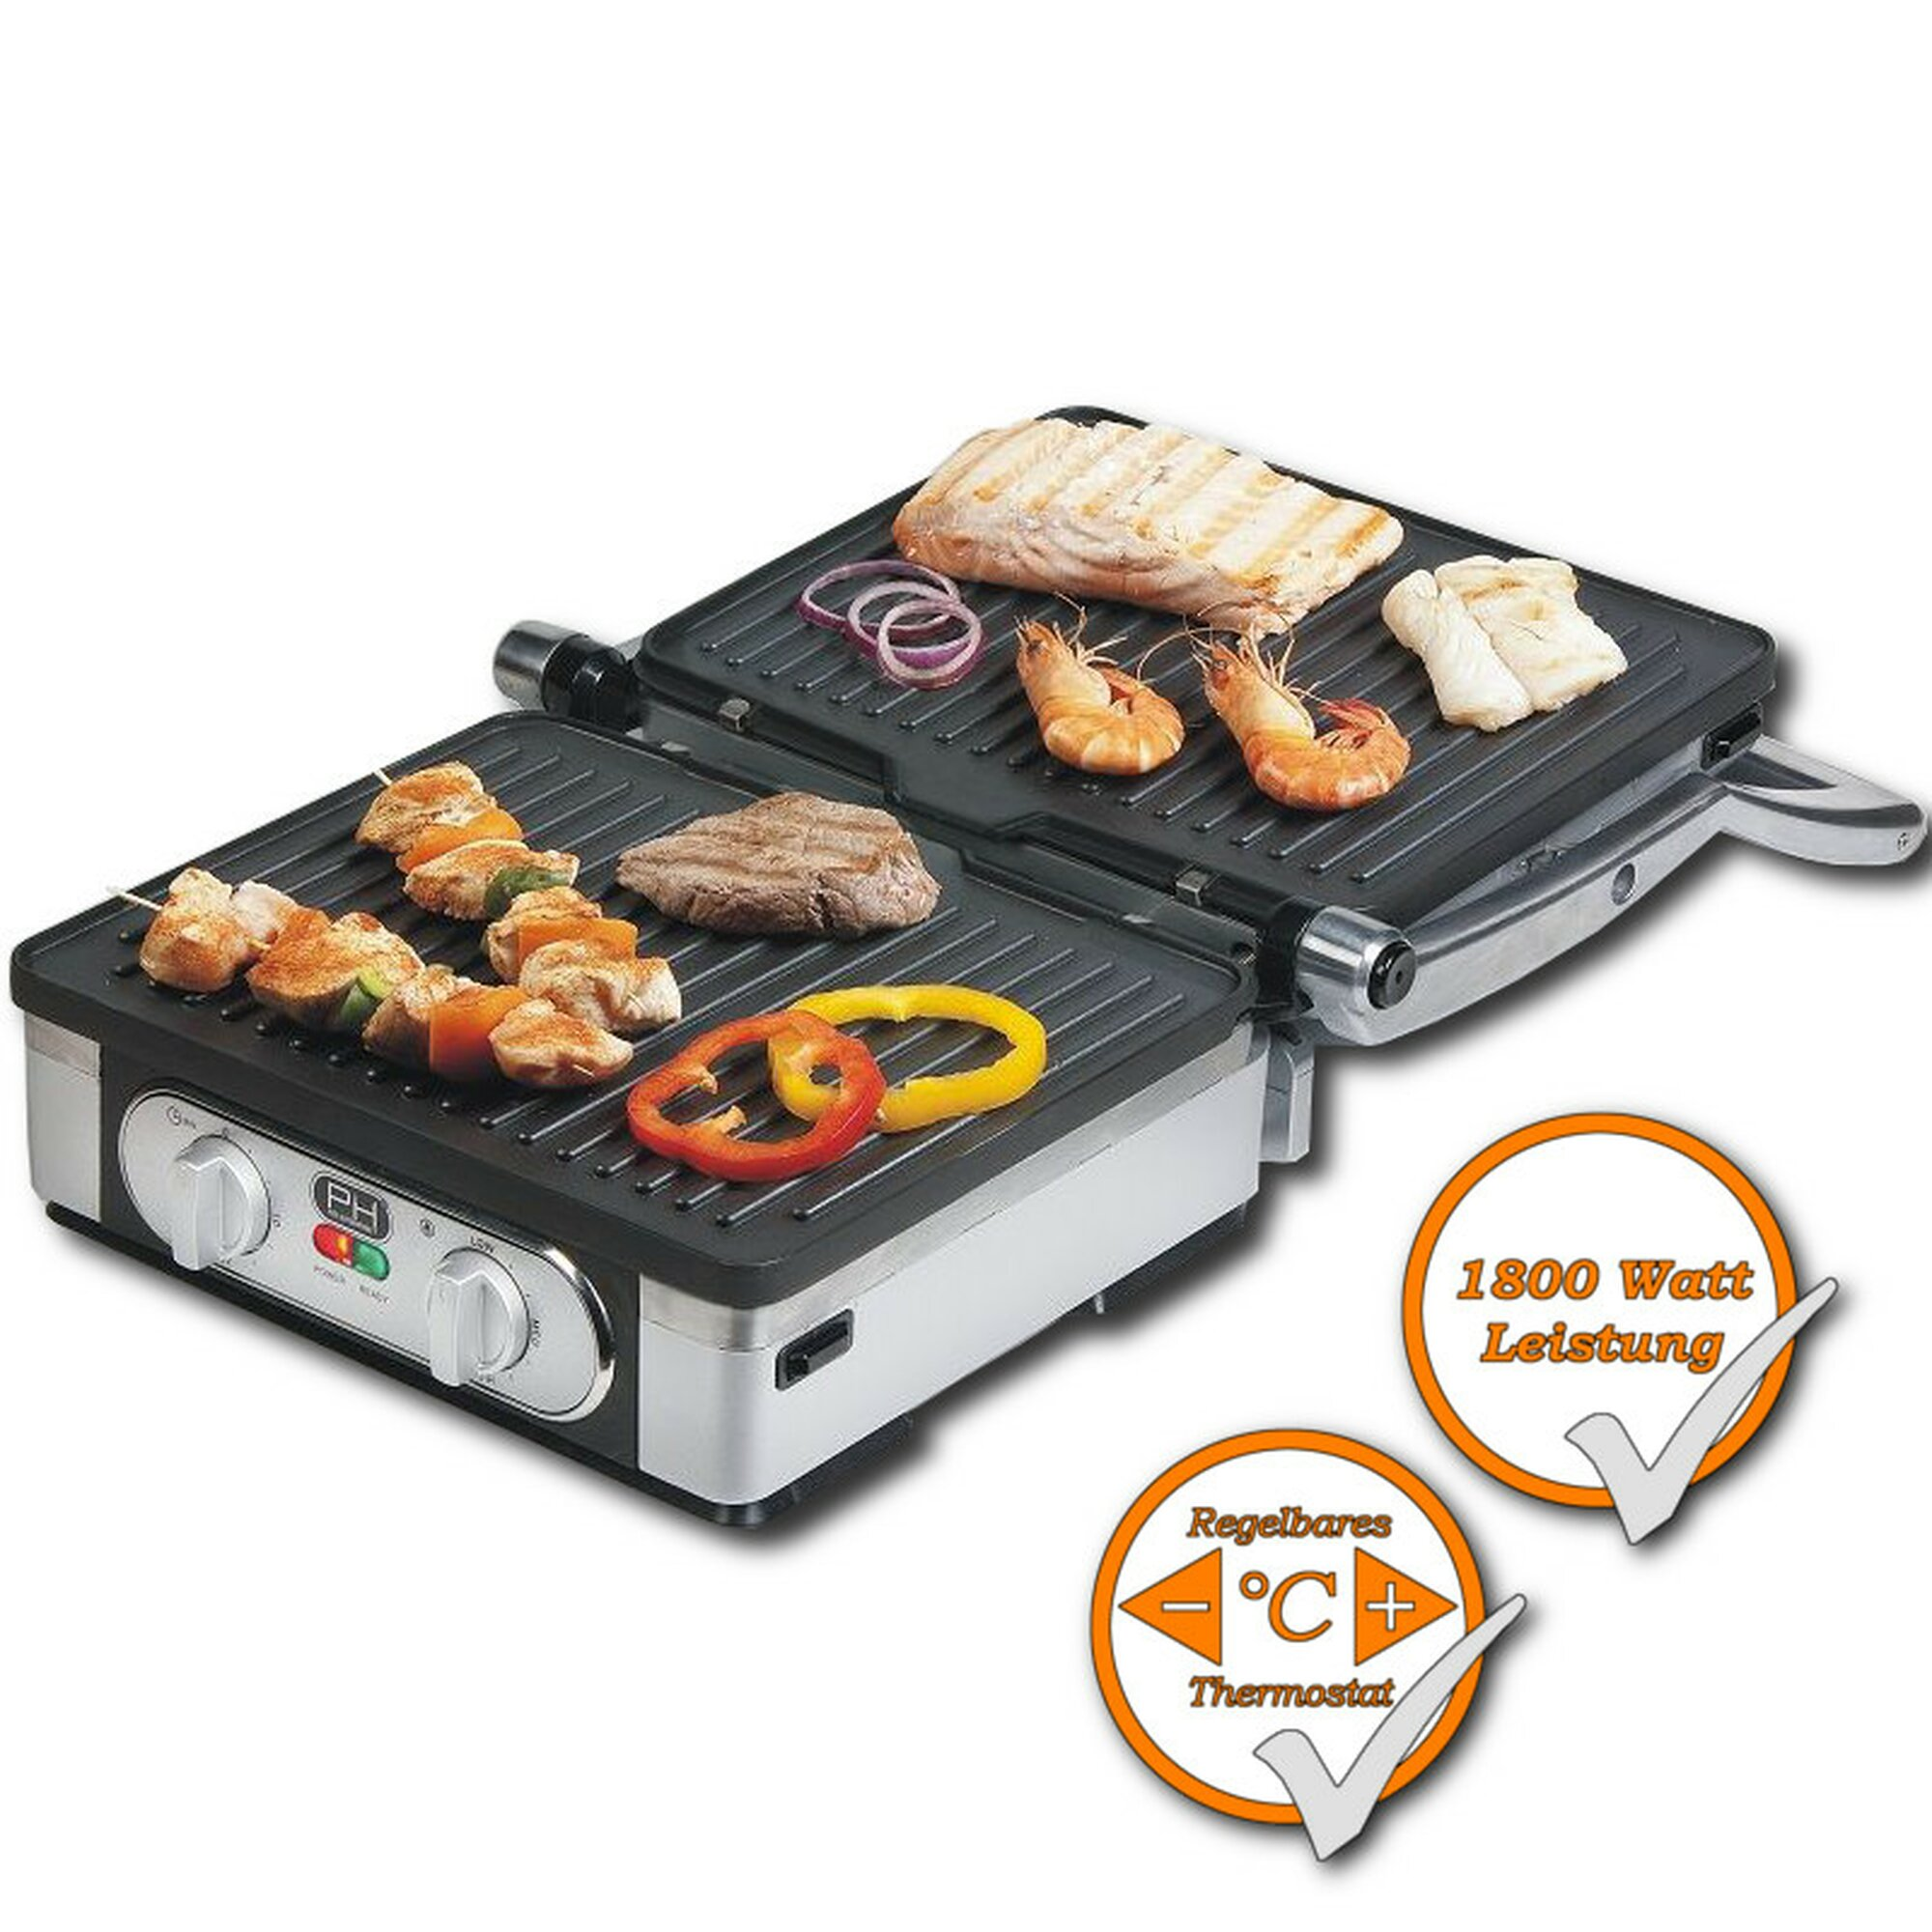 Kontaktgrill domo do9051g tischgrill 77 17 for Domo arreda facile cucine